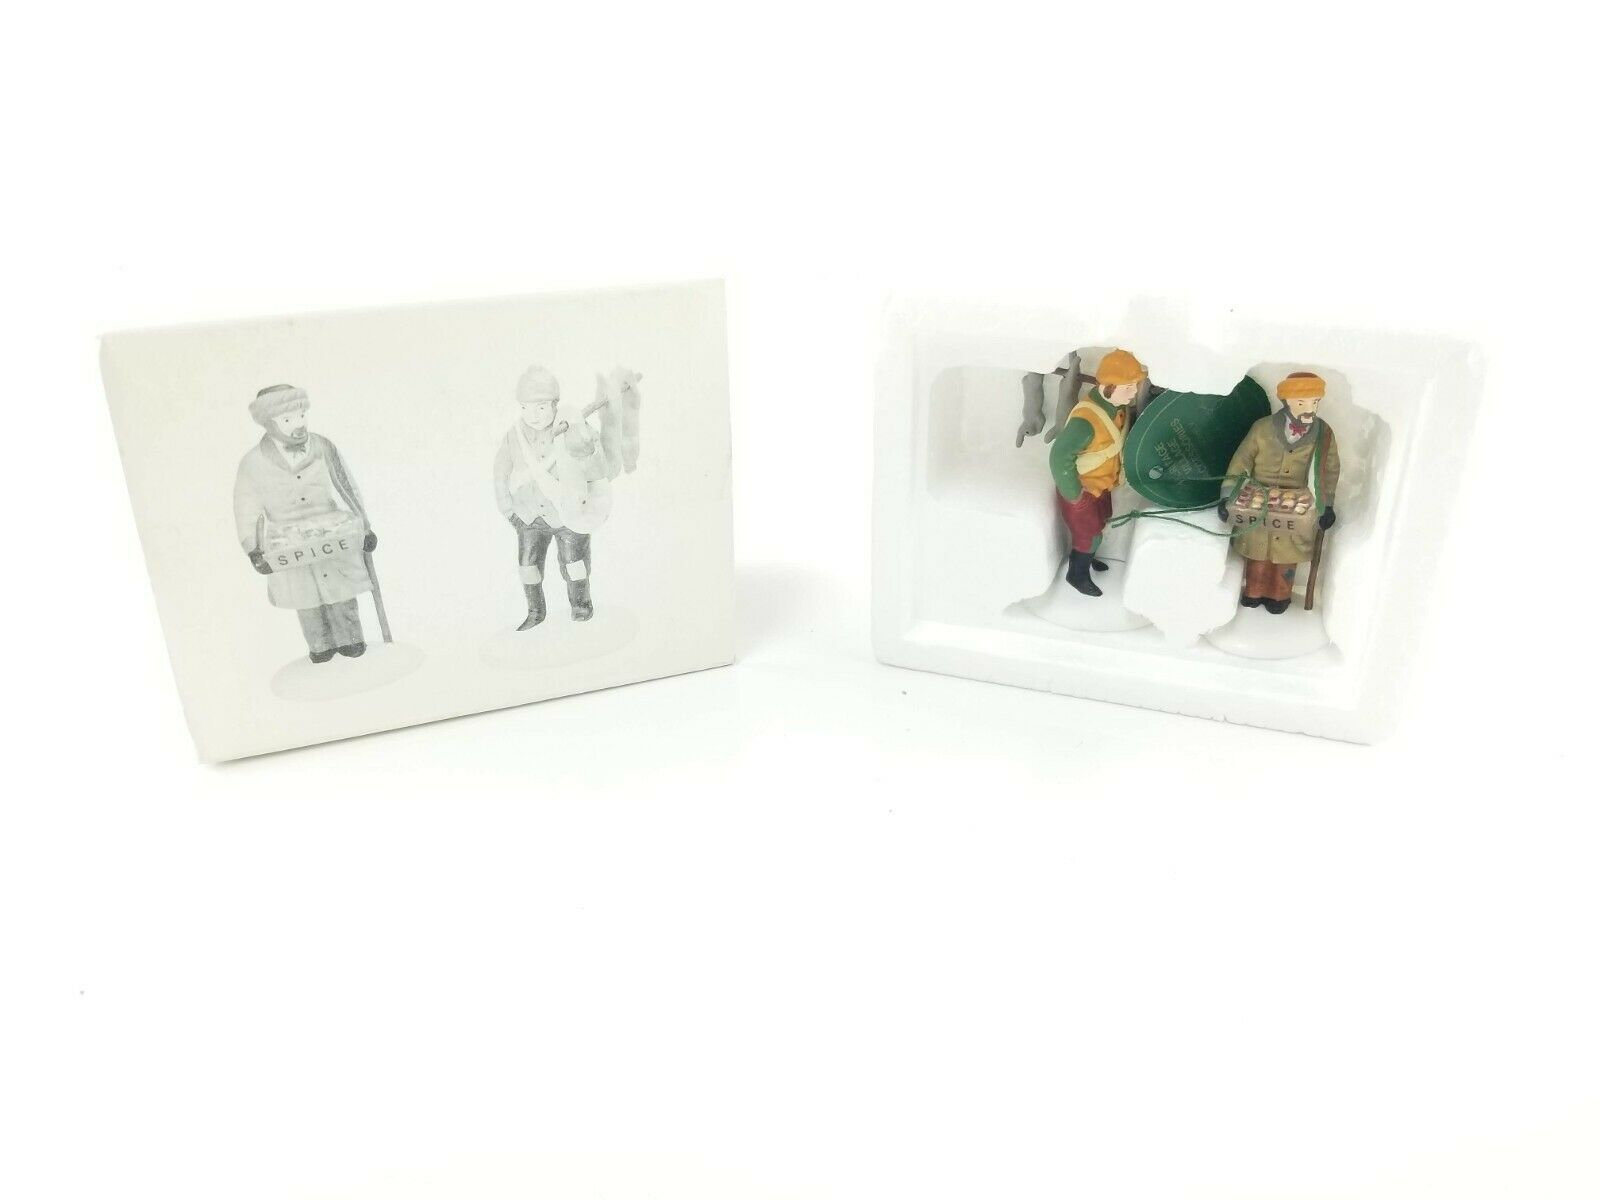 Department 56 Heritage Accessory Village Street Peddlers Set of 2 5804-1 in Box - $12.95